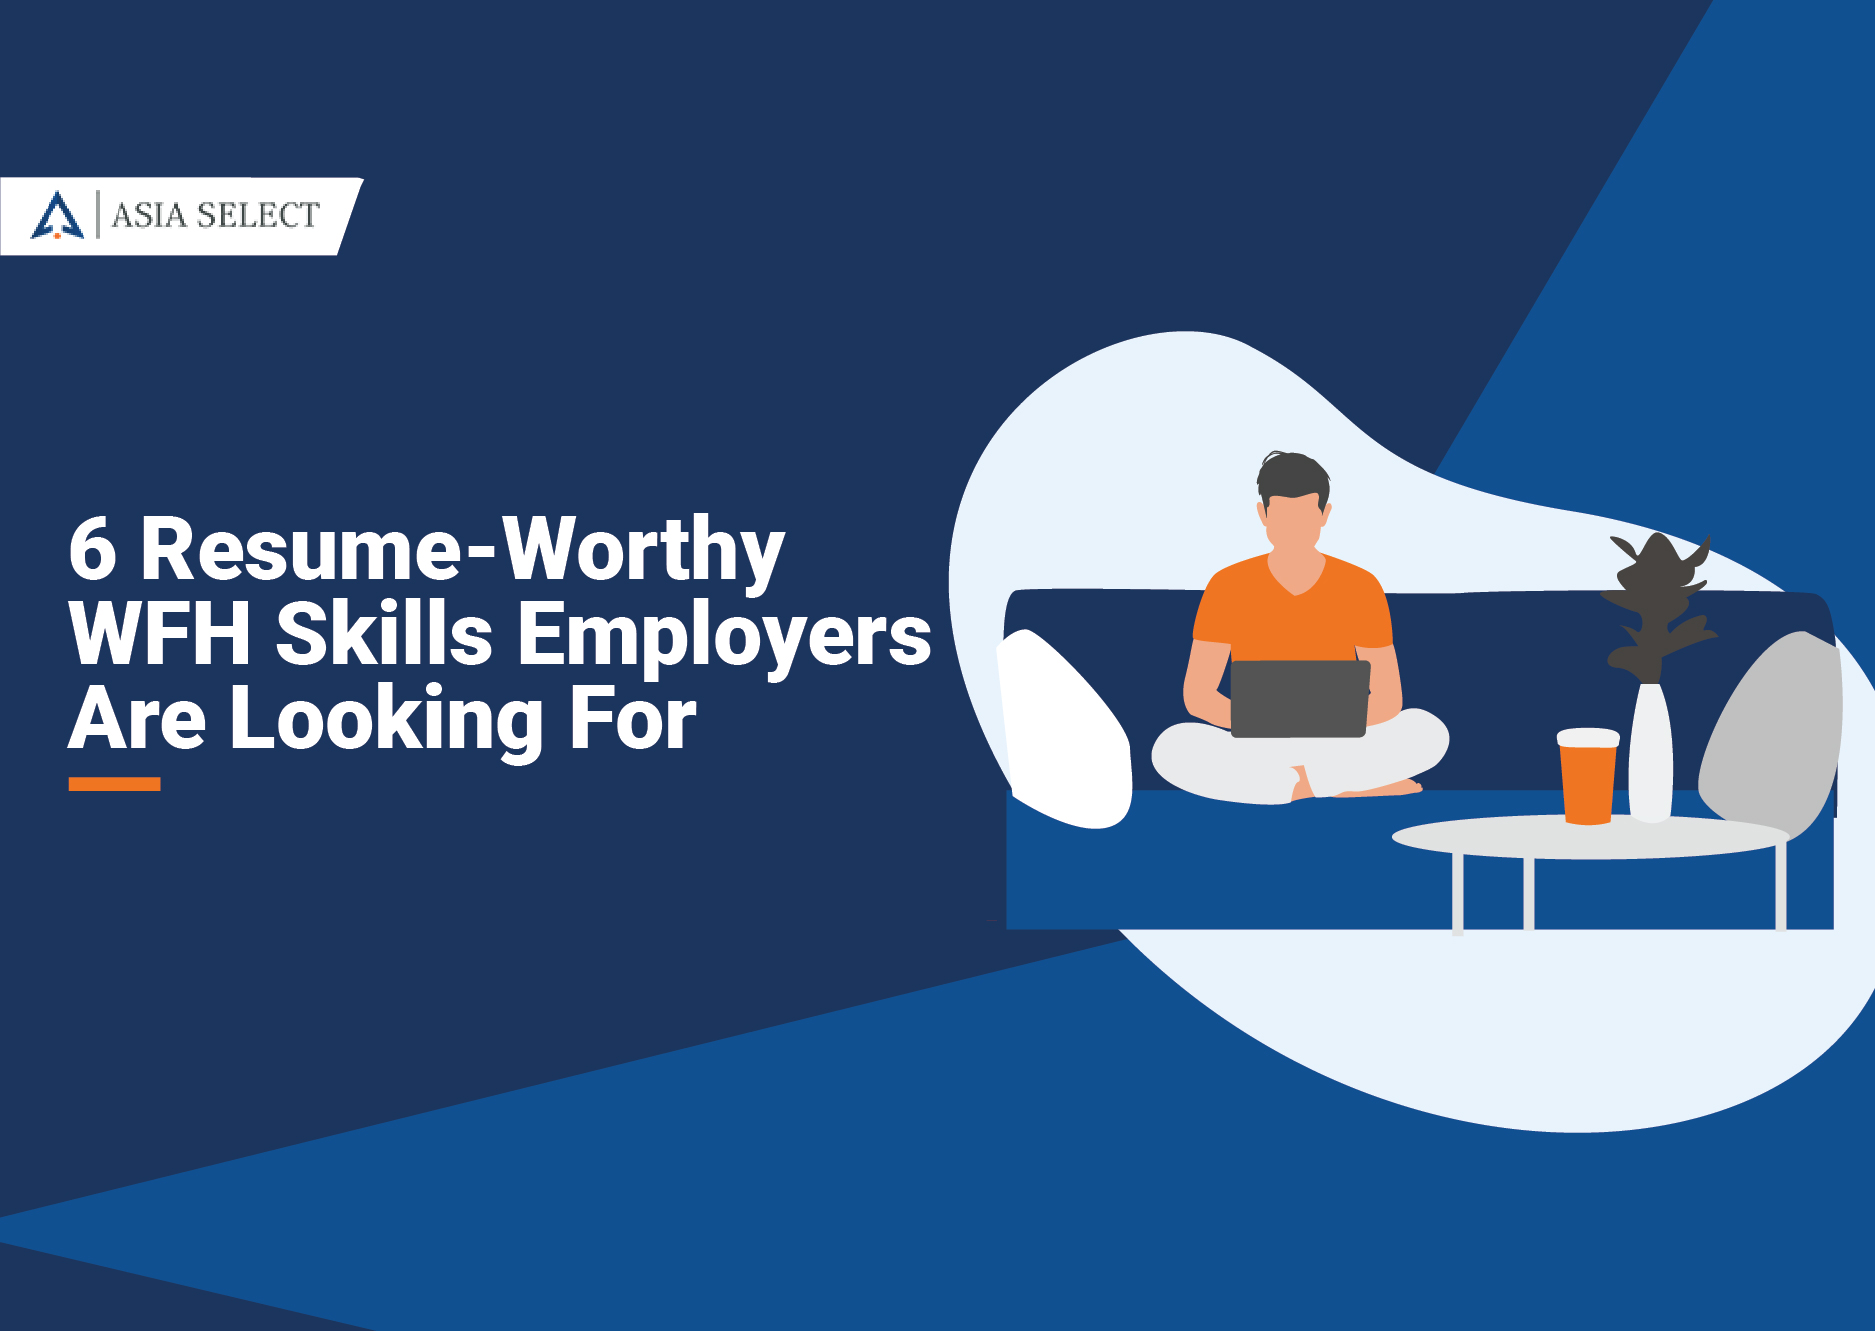 6 Resume-worthy WFH skills employers are looking for